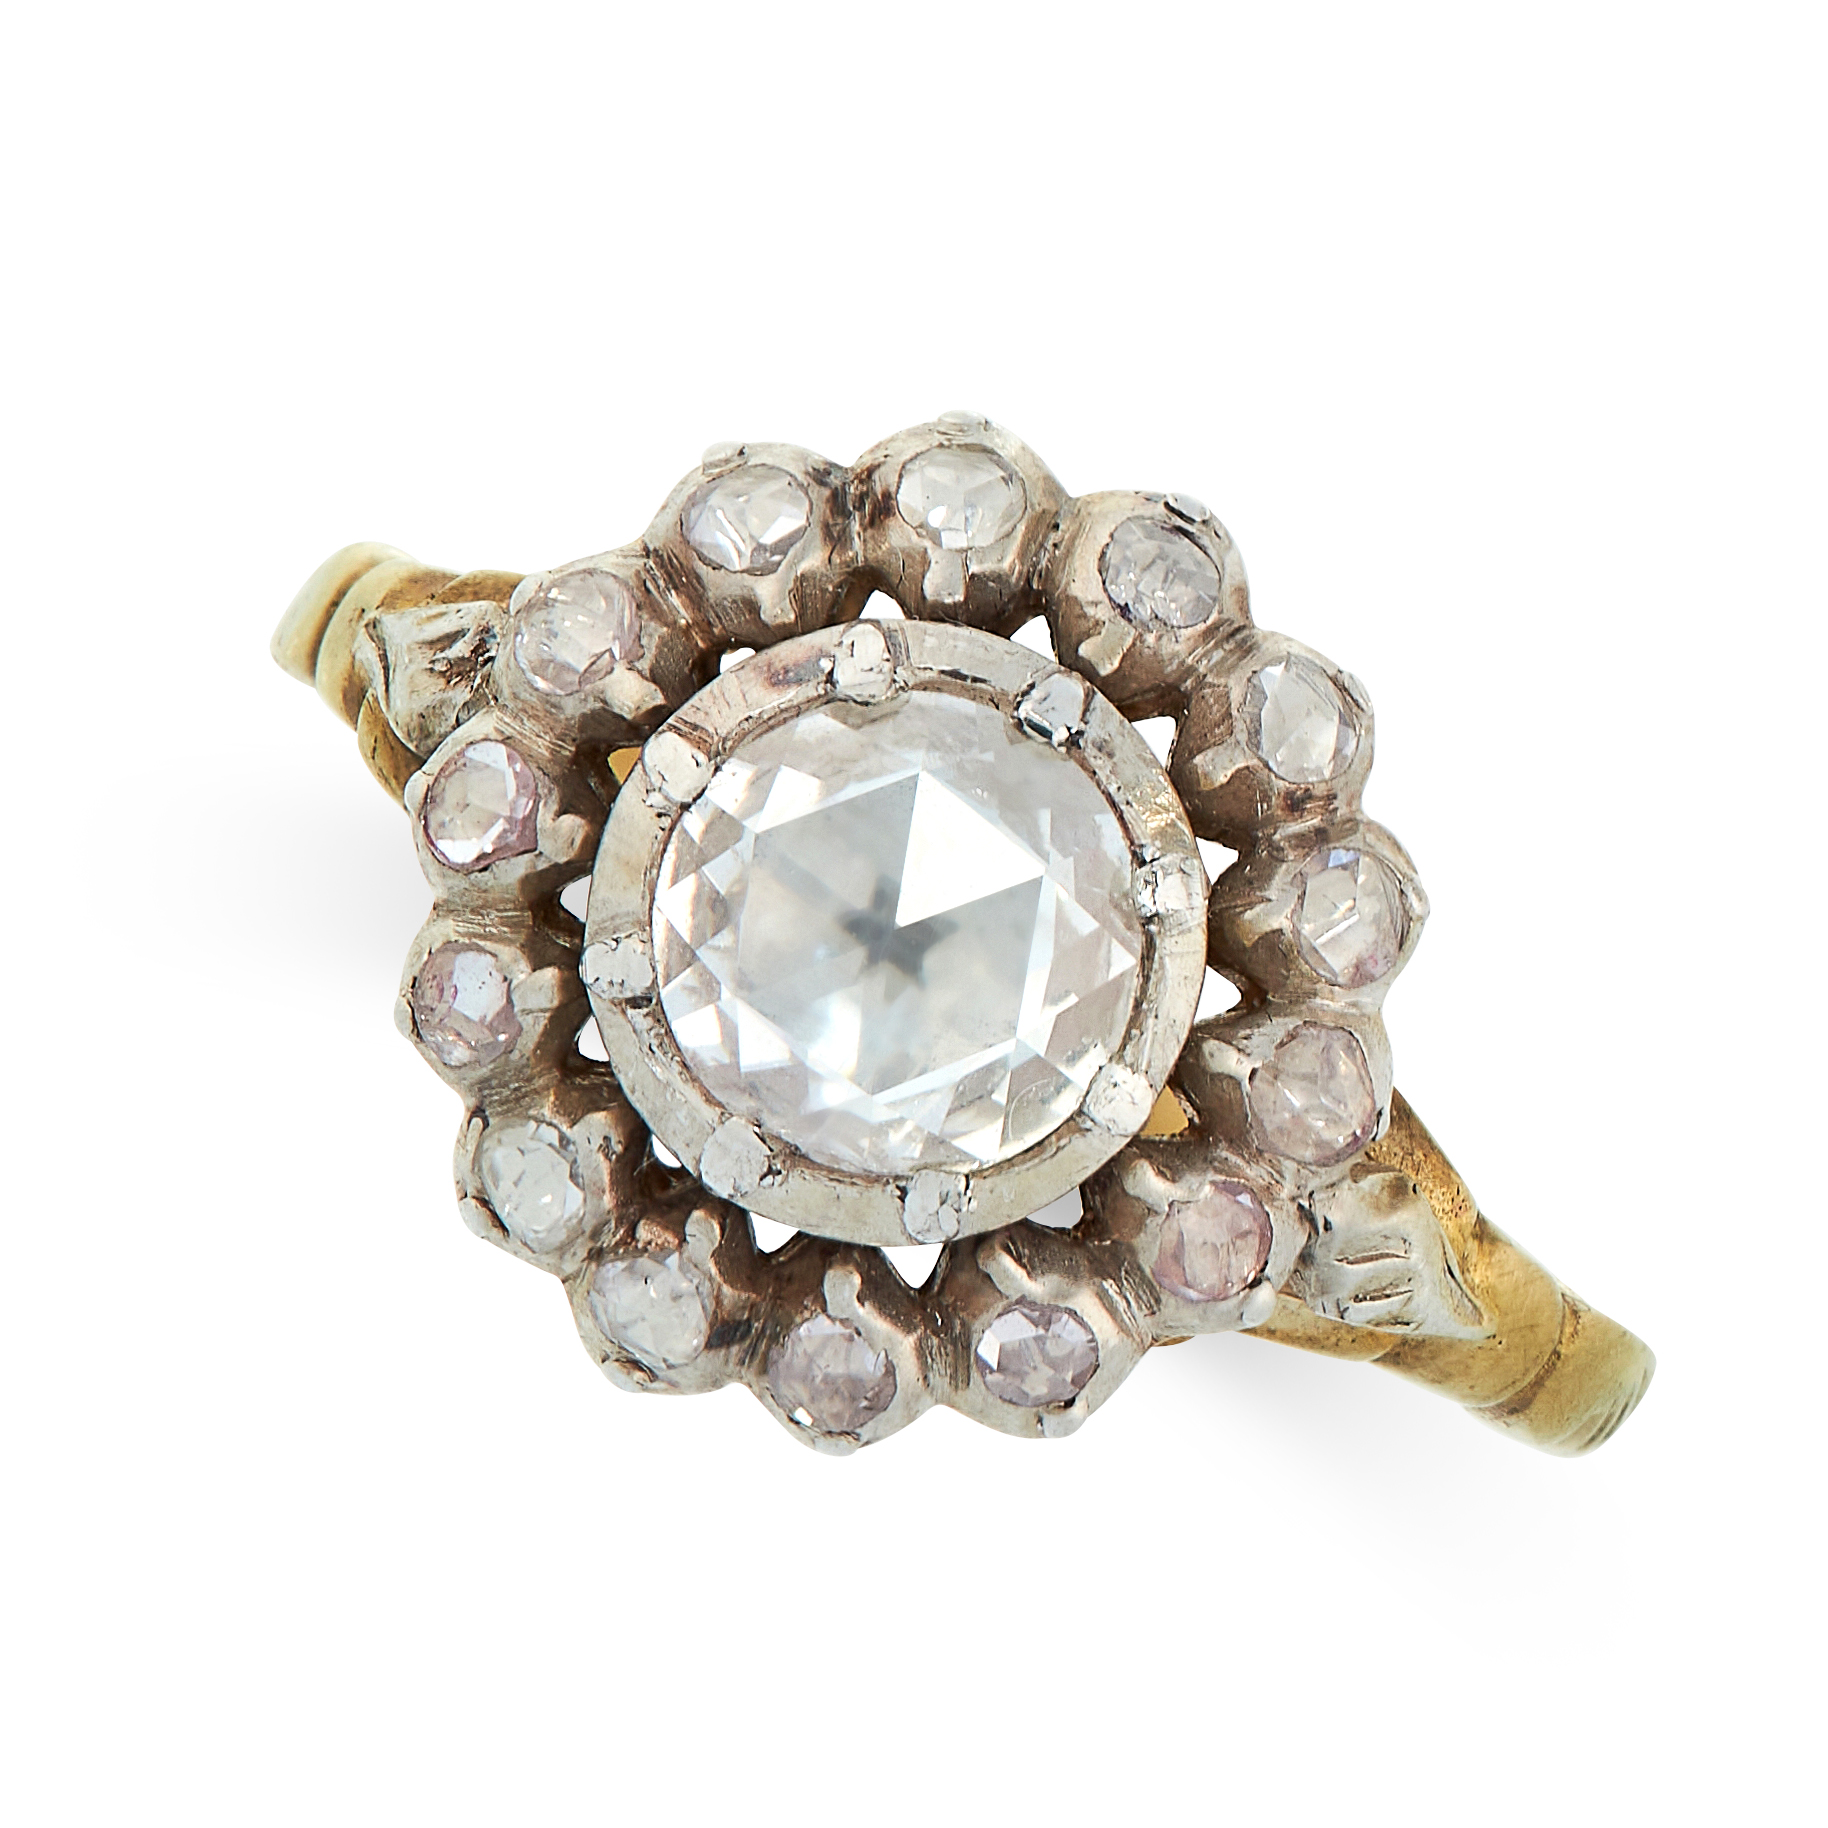 ANTIQUE GEORGIAN DIAMOND RING in yellow gold and silver, in cluster form, set with a central rose